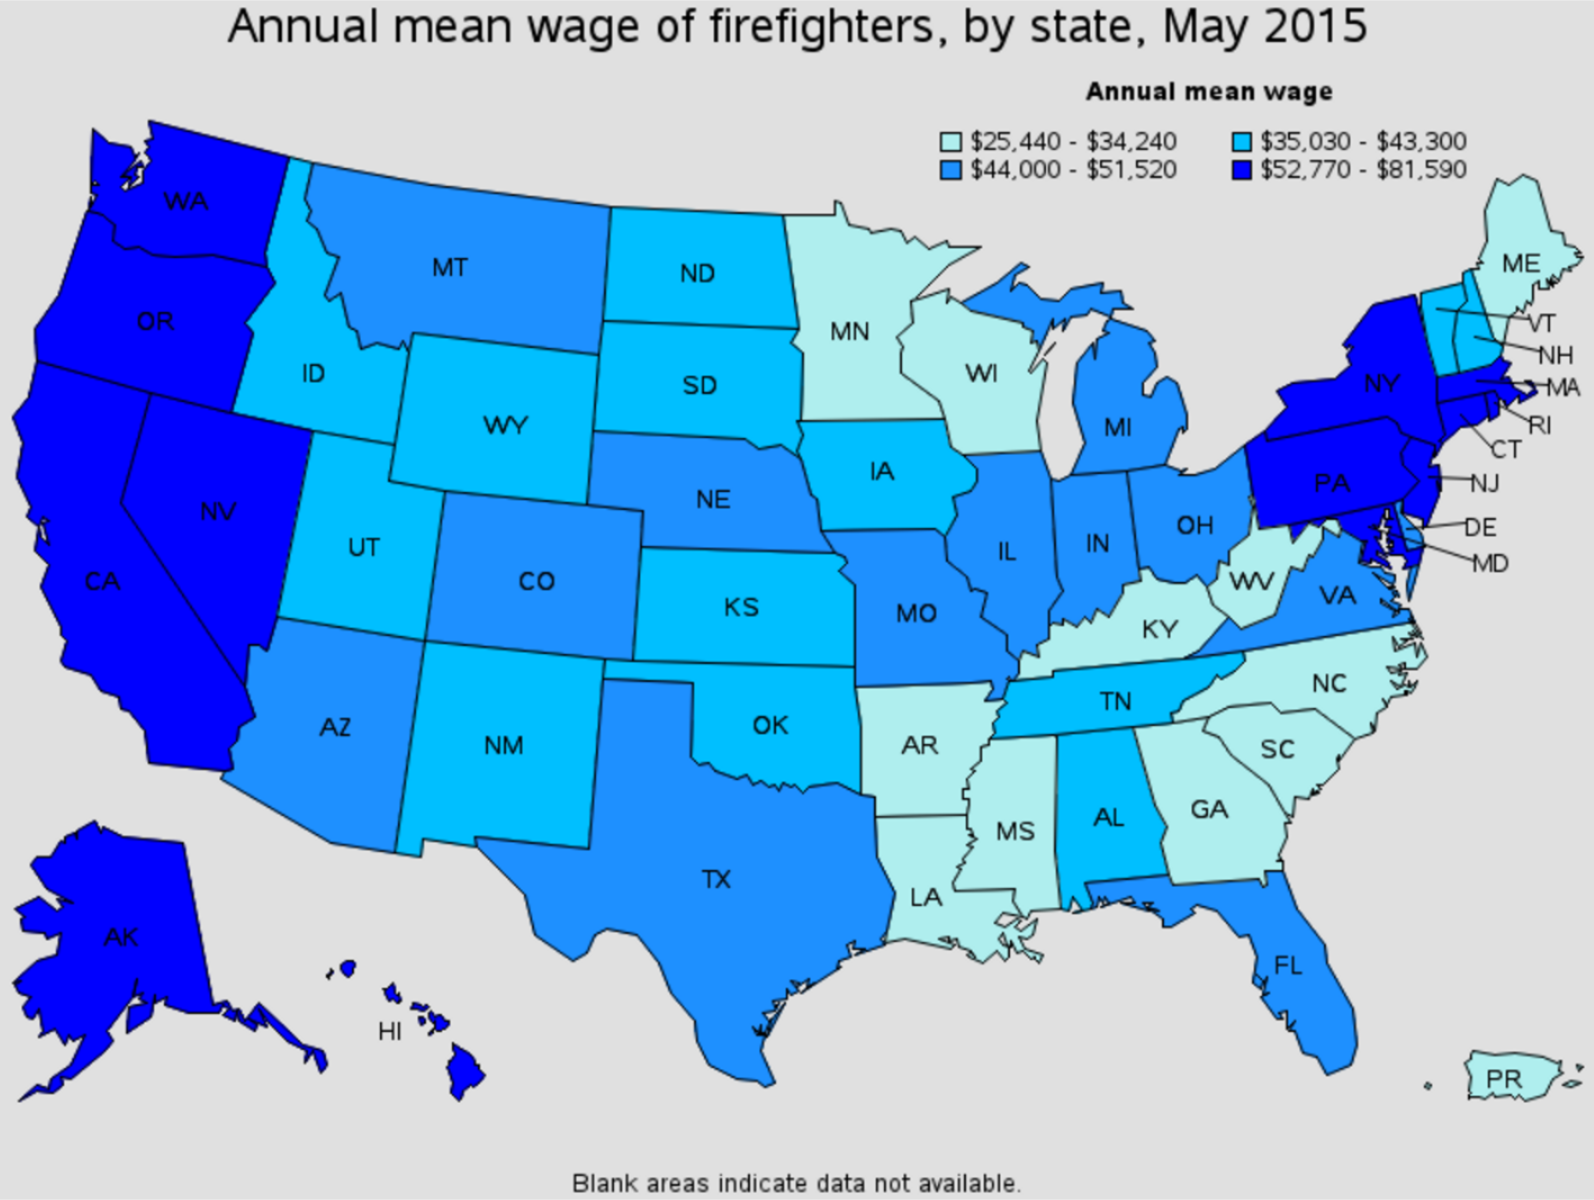 firefighter average salary by state Woodsboro Texas